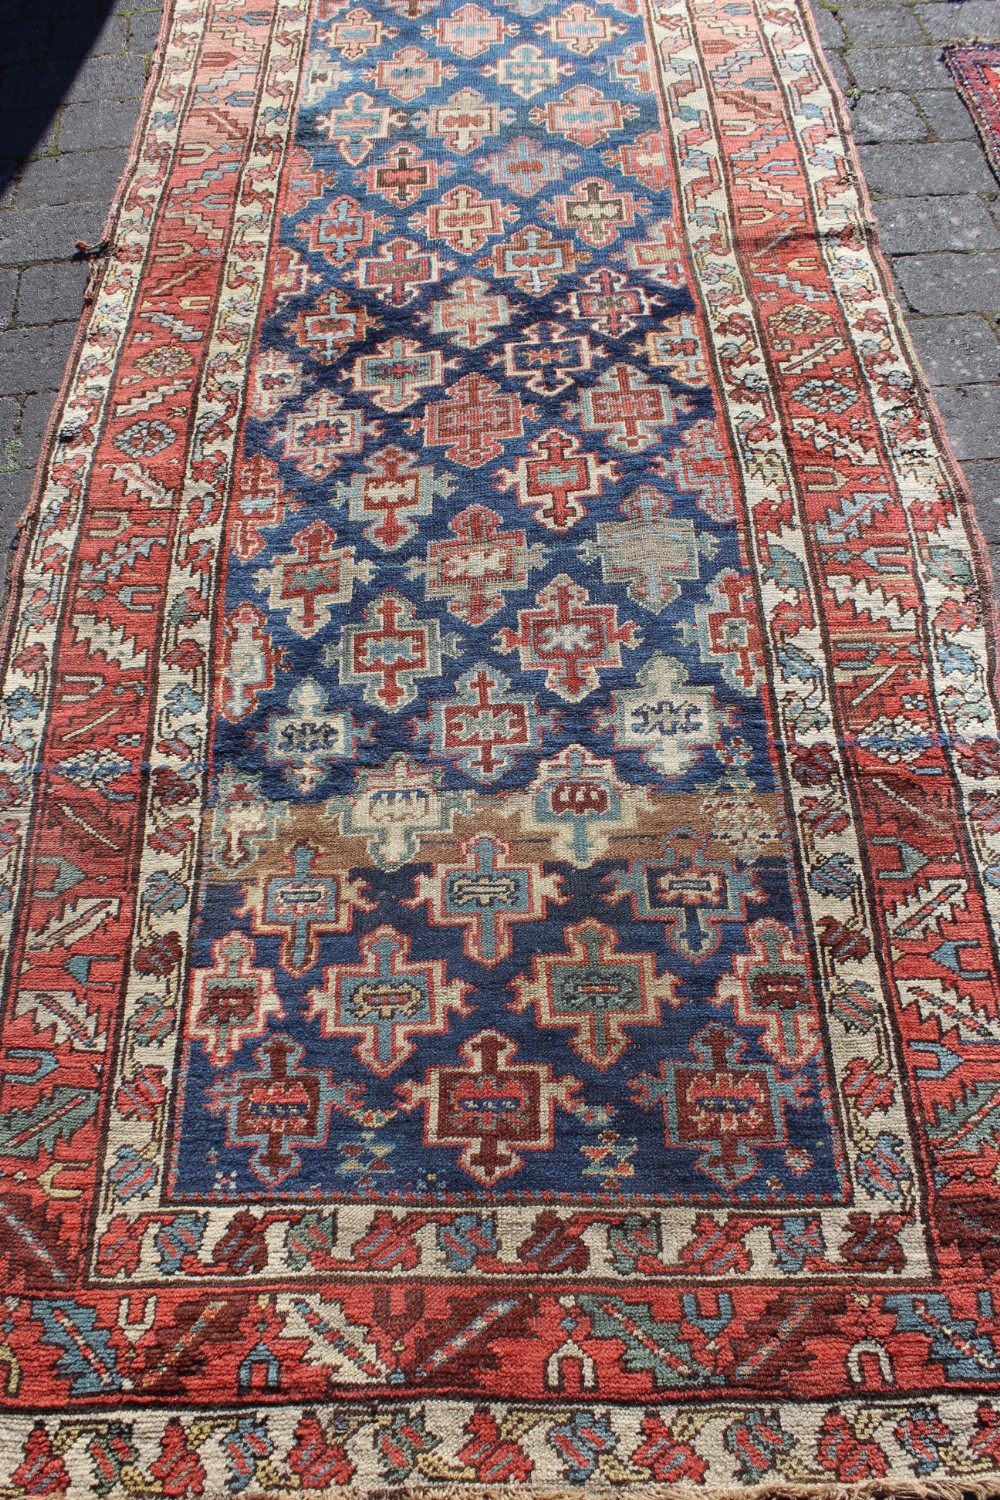 Antique Caucasian Karabagh Long Rug  340415  Sellingantiquescouk